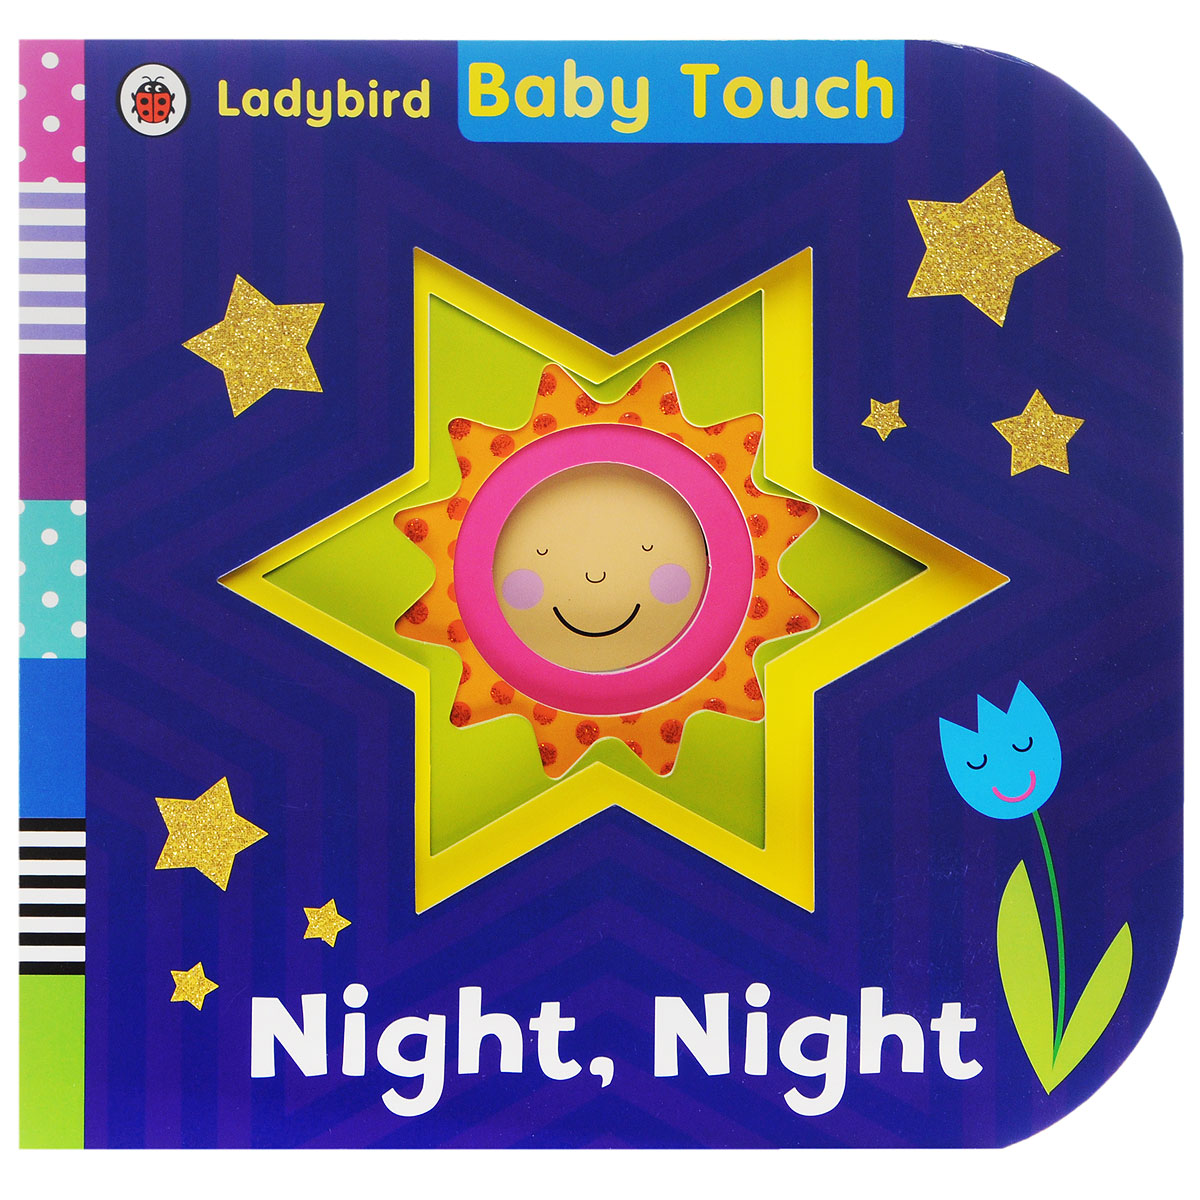 Baby Touch: Night, Night 7colors led night light starry sky remote control ocean wave projector with mini music novelty baby lamp night lamp for kids